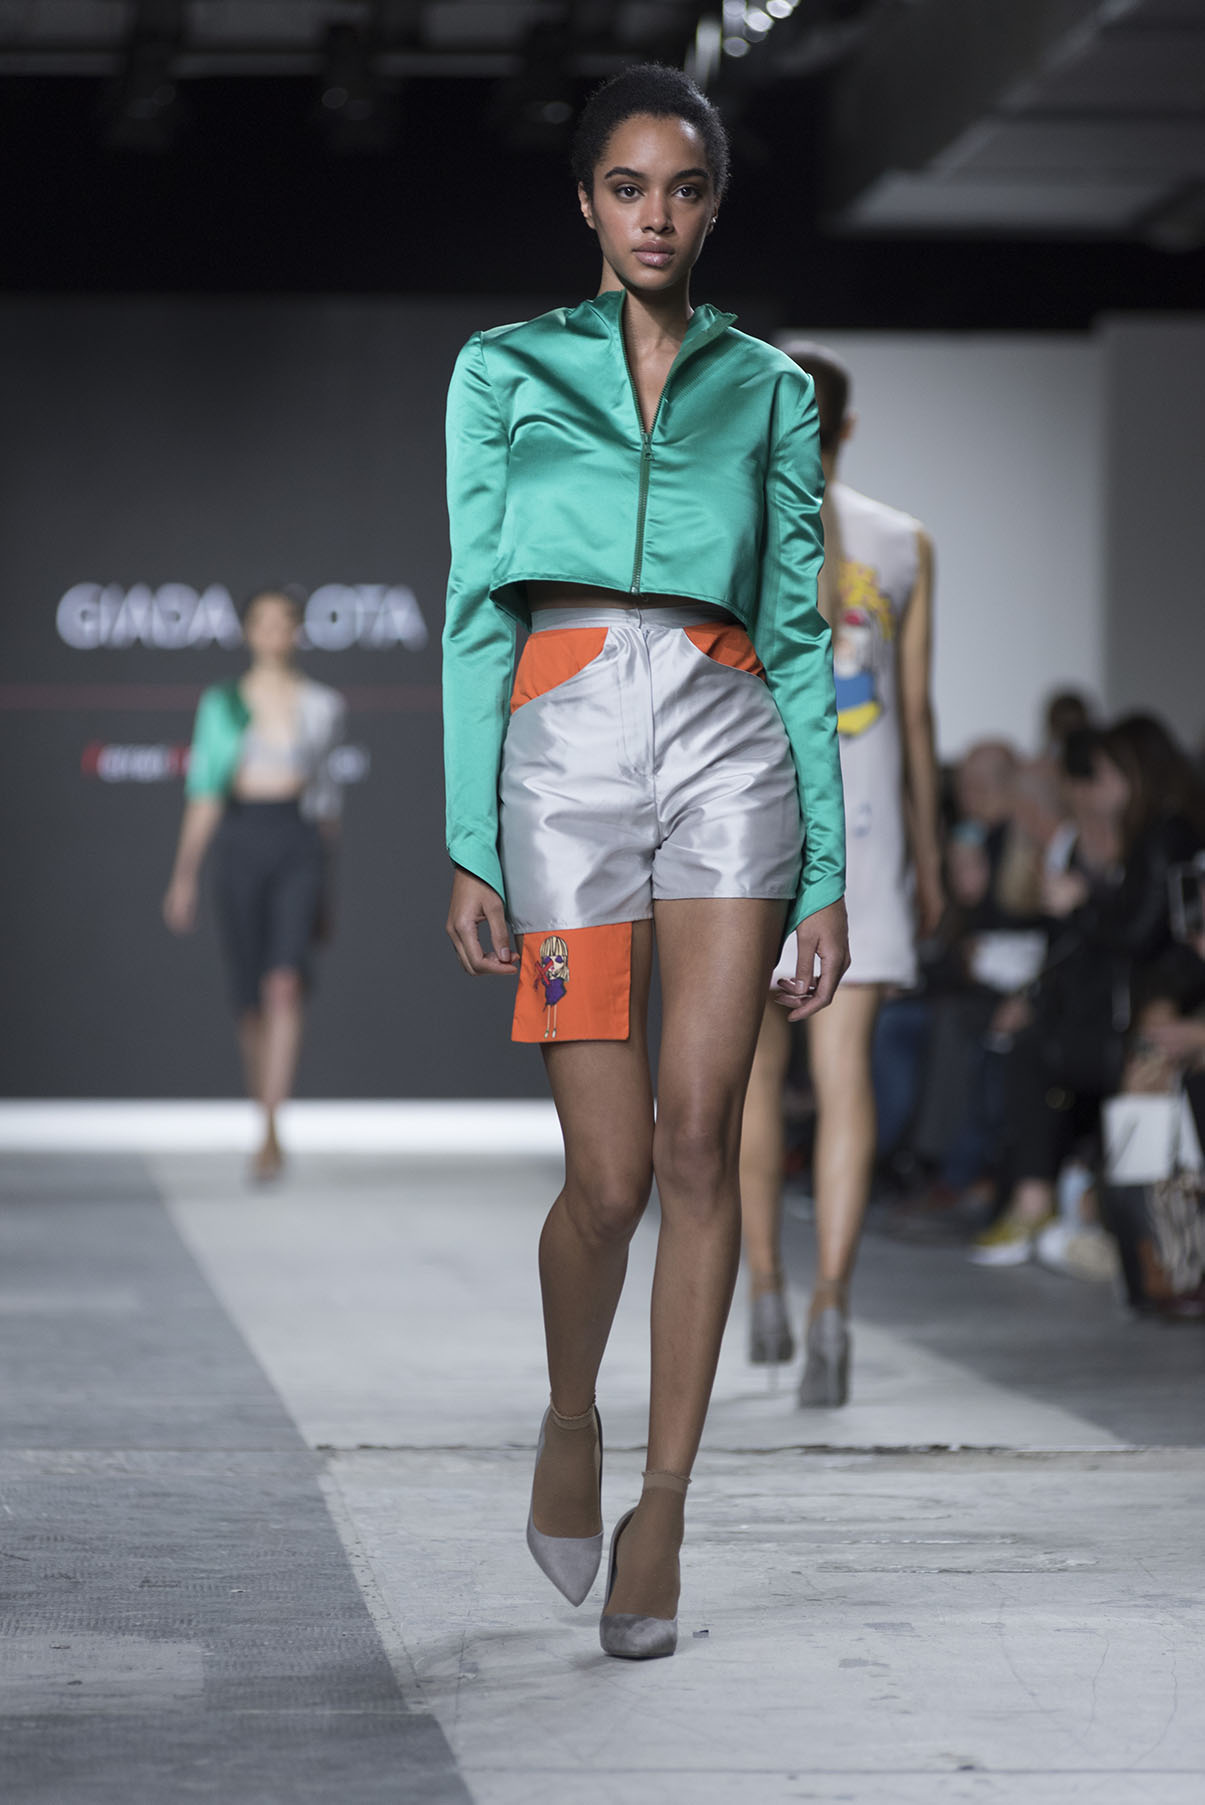 Fashion Designer: Giada Alota - Fashion Graduate Italia Fashion Show - Ferrari Fashion School